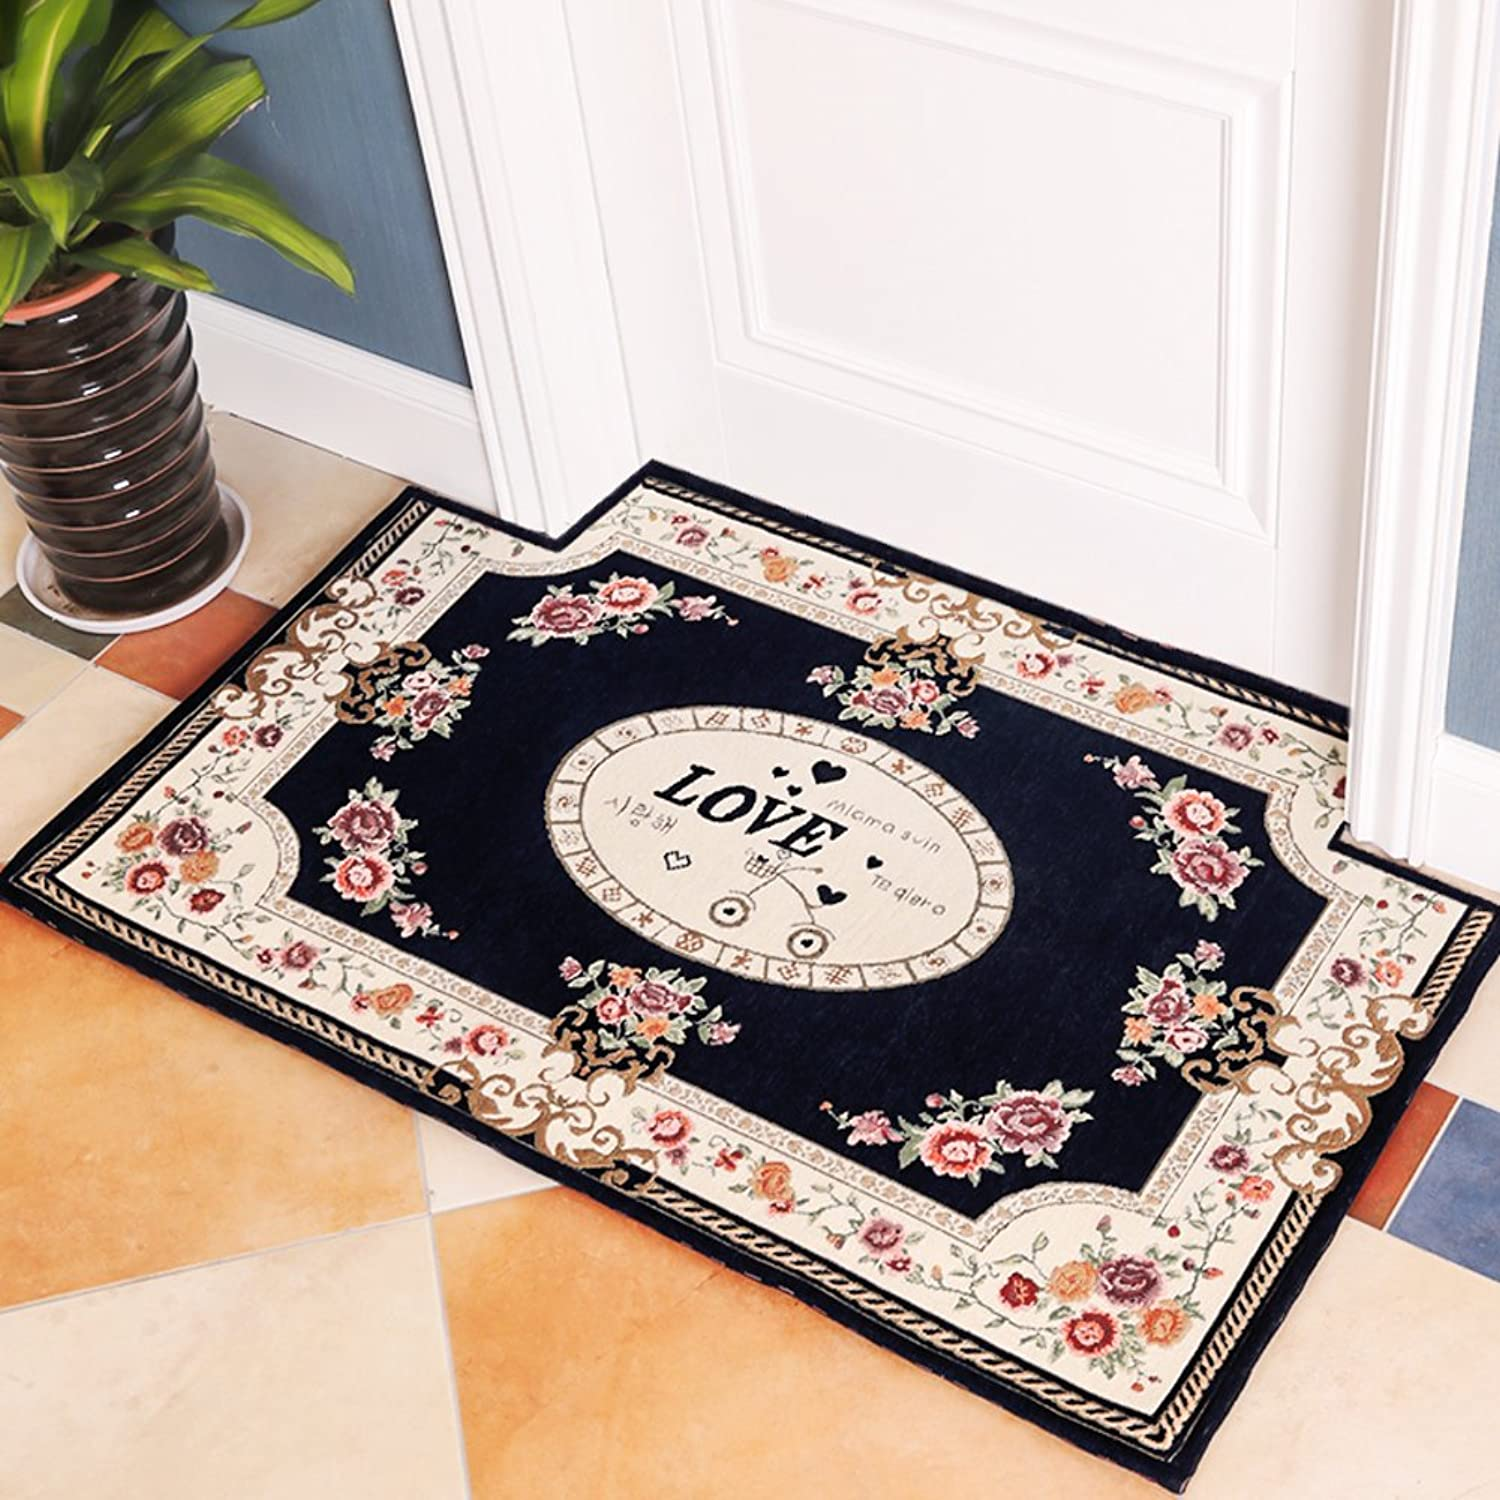 Foot pad door mats water absorption non-Slip living room home bathroom doorway-F 80x120cm(31x47inch)